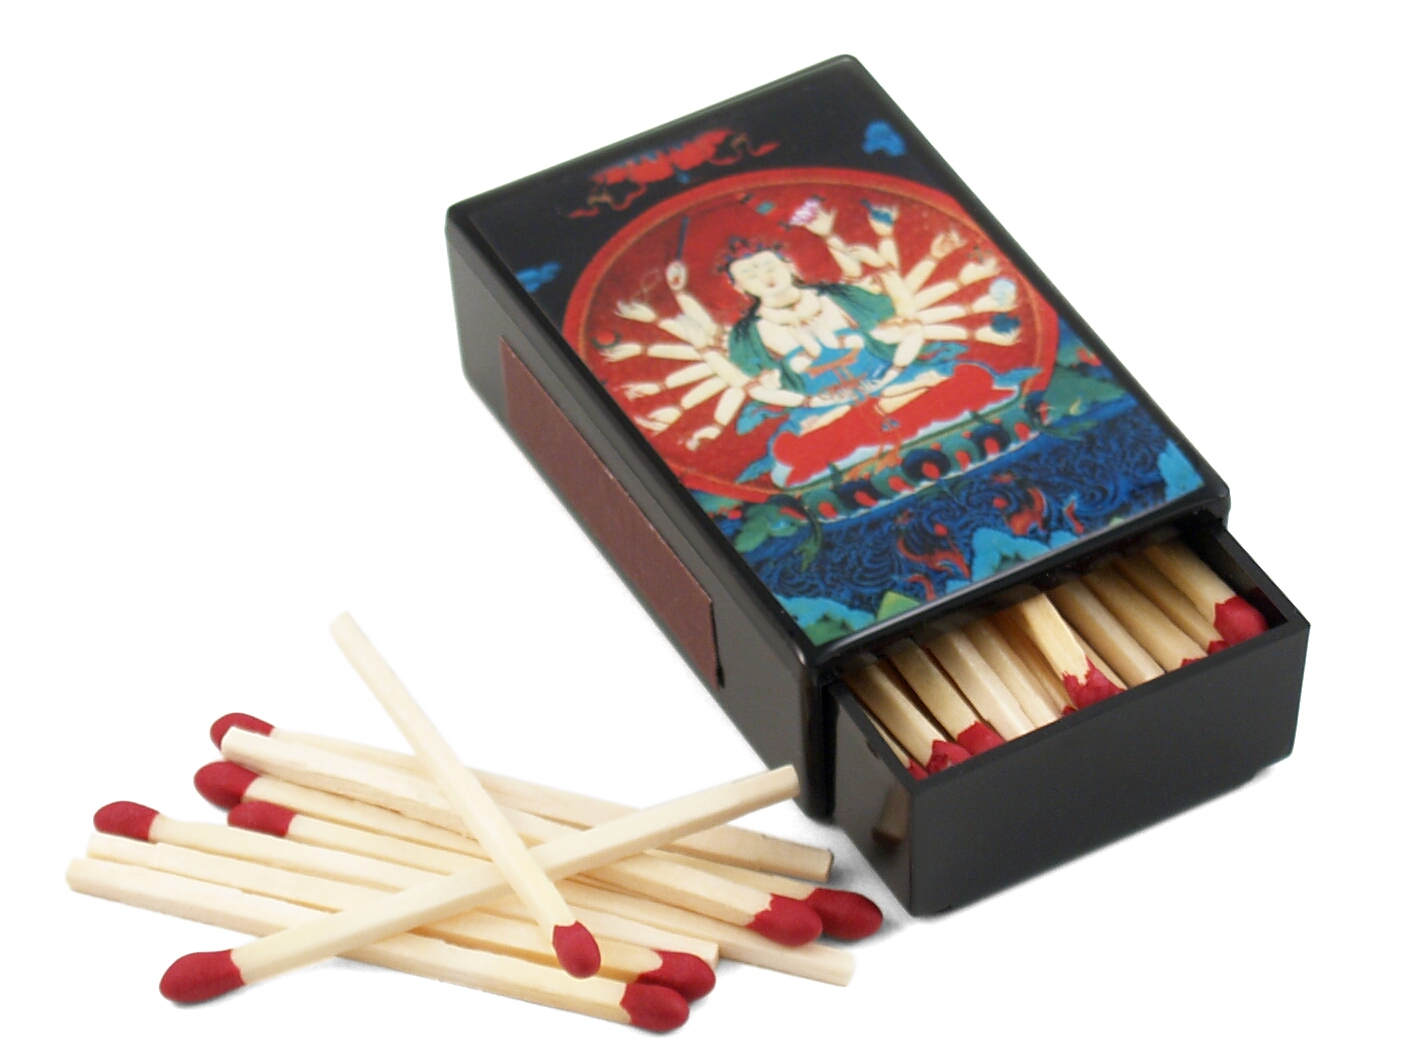 Quan Yin Buddha With 16 Arms Match Box with Matches